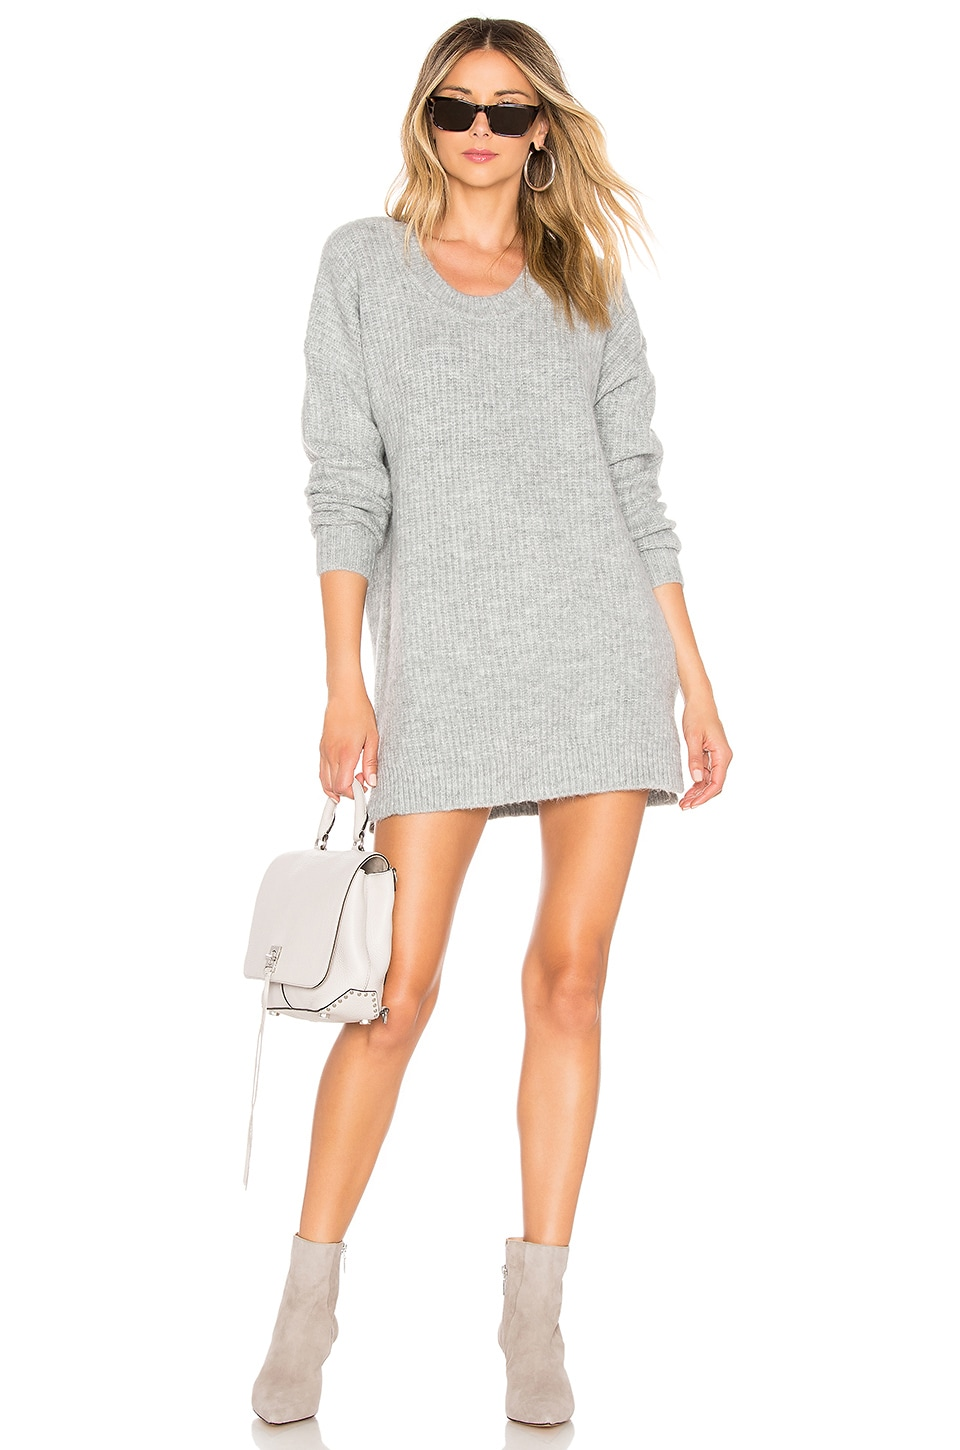 CHRISSY TEIGEN X Revolve Logan Sweater in Gray